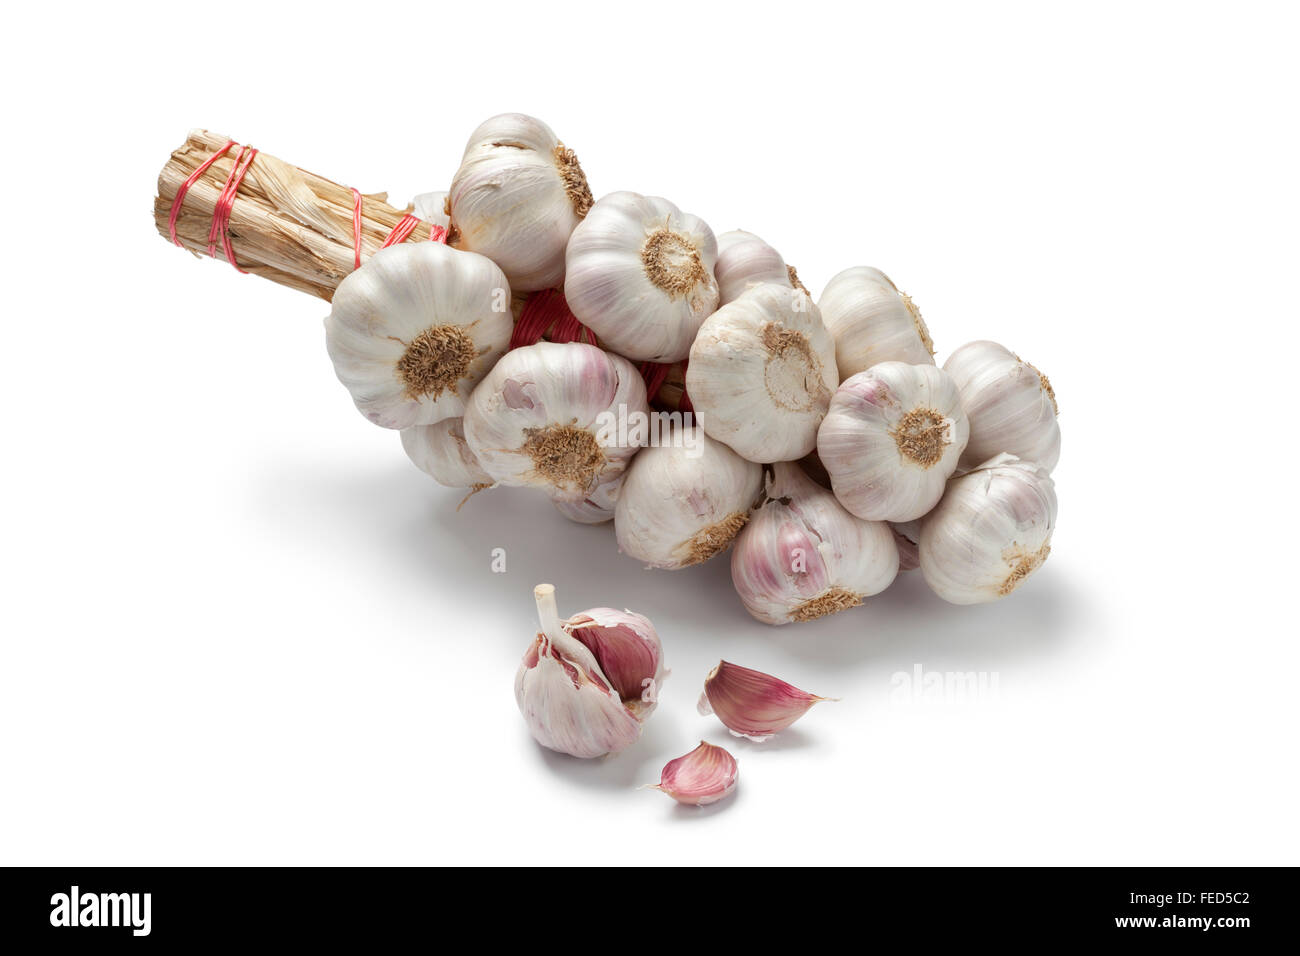 String of garlic bulbs on white background - Stock Image